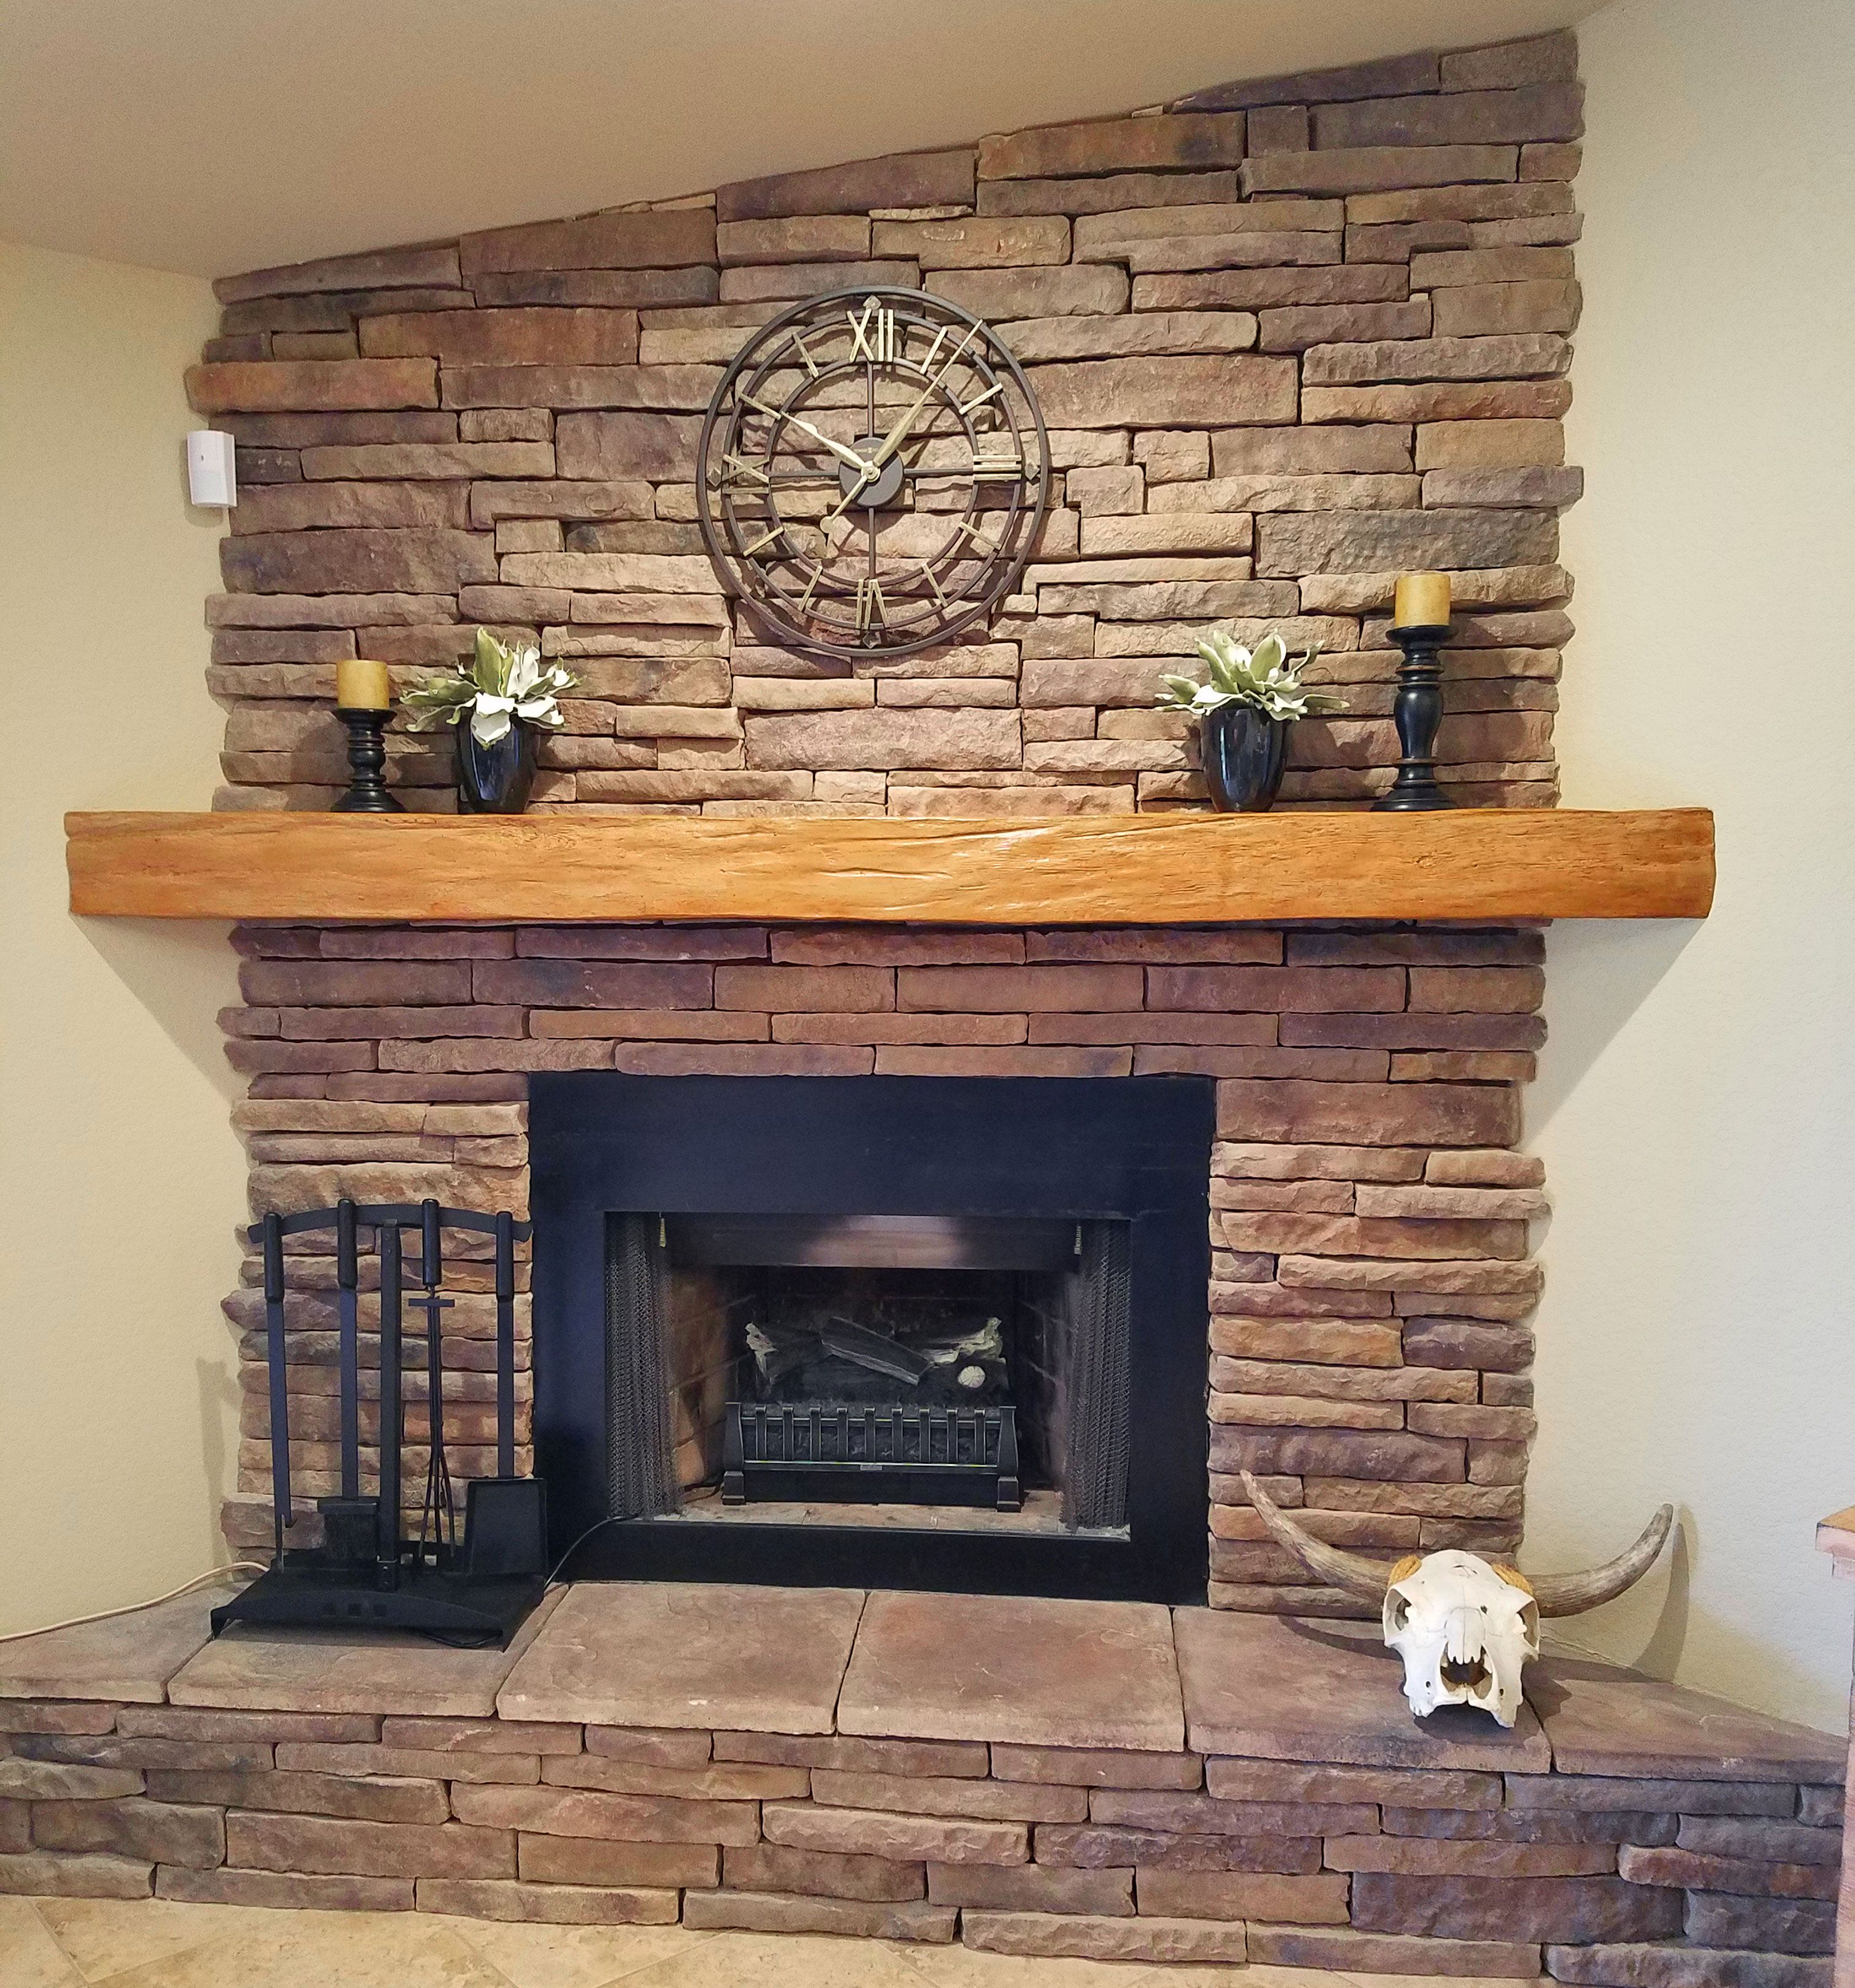 Endurathane Faux Wood Beam Used As Shelf On Mantel For